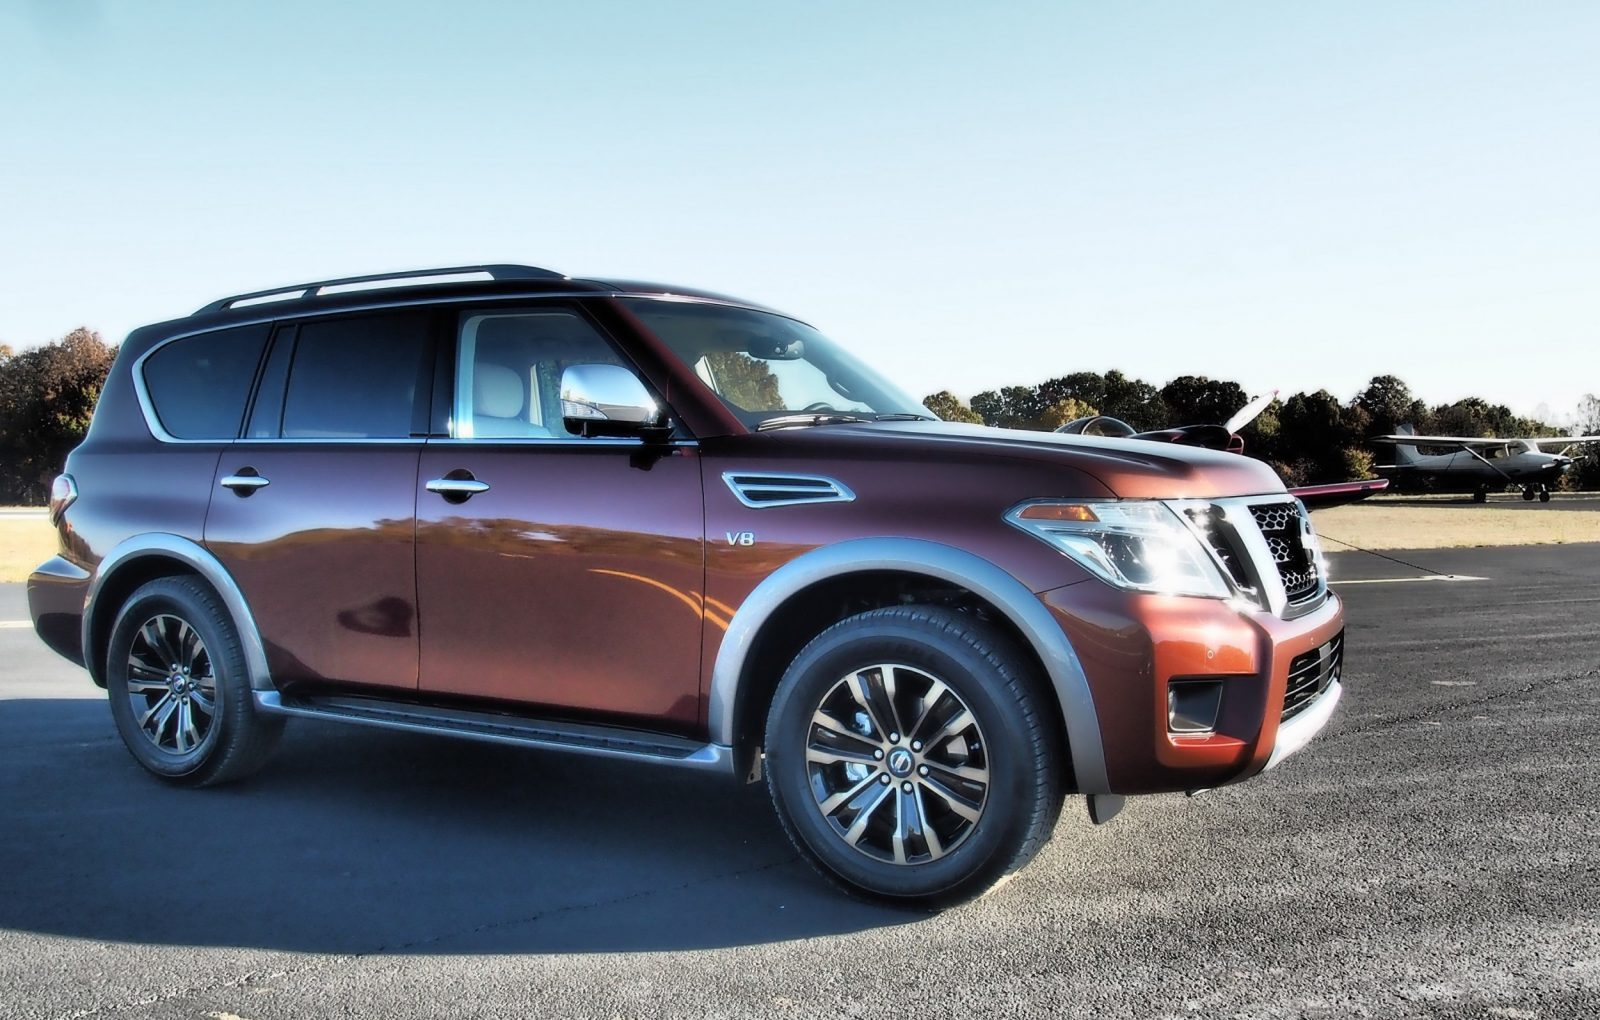 2017 nissan armada platinum road test review by lyndon johnson car revs. Black Bedroom Furniture Sets. Home Design Ideas